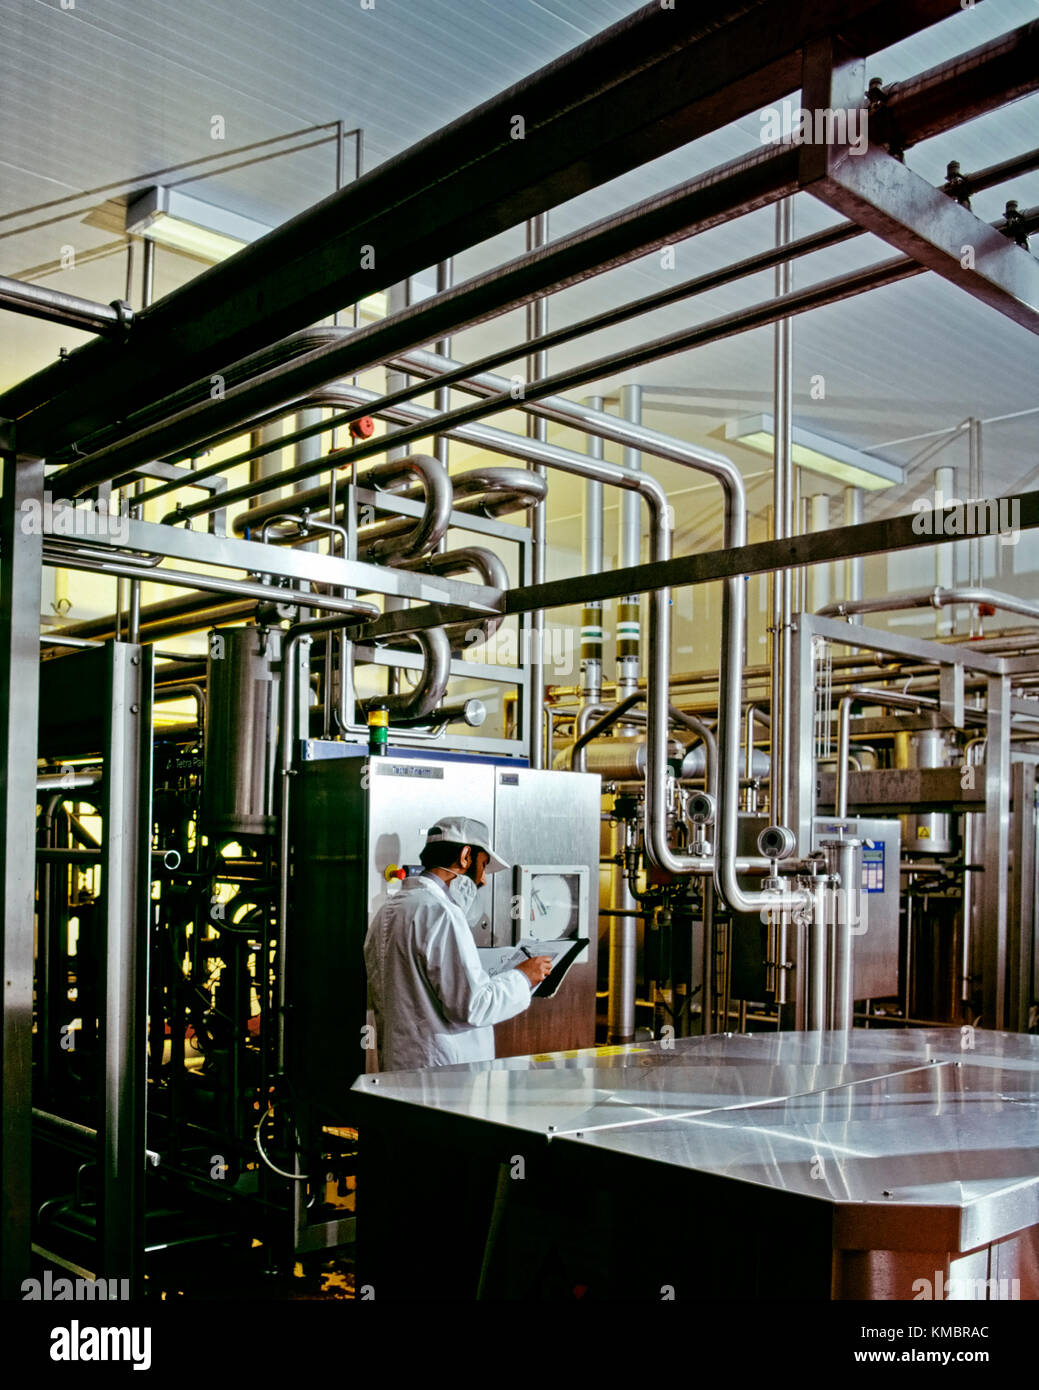 Milk pasteurisation plant - Stock Image